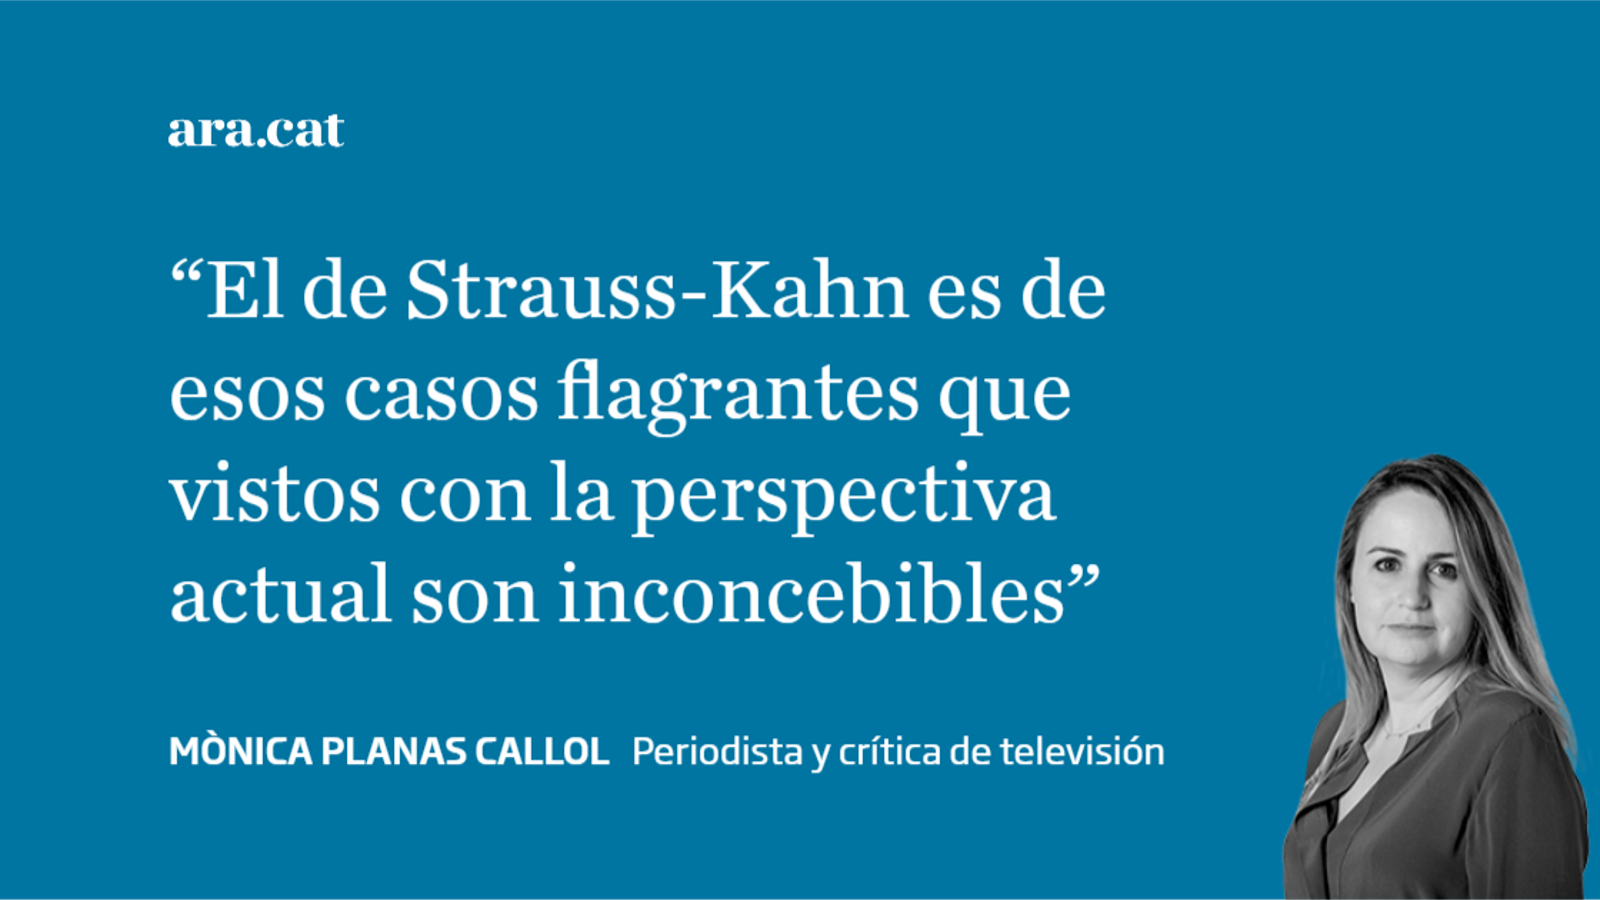 La condena de Dominique Strauss-Kahn